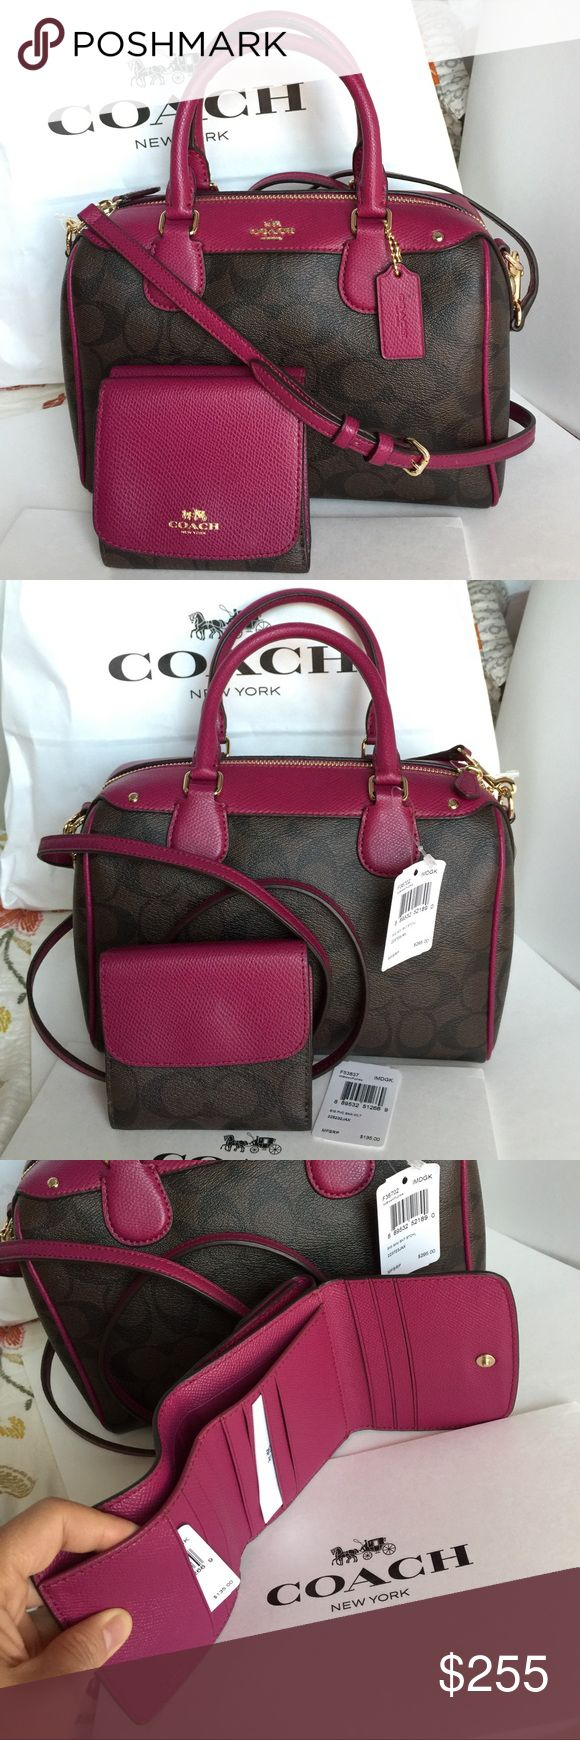 Coach Purse&Wallet 100% Authentic Coach Purse and Wallet, both brand new with tag! Coach Bags Crossbody Bags